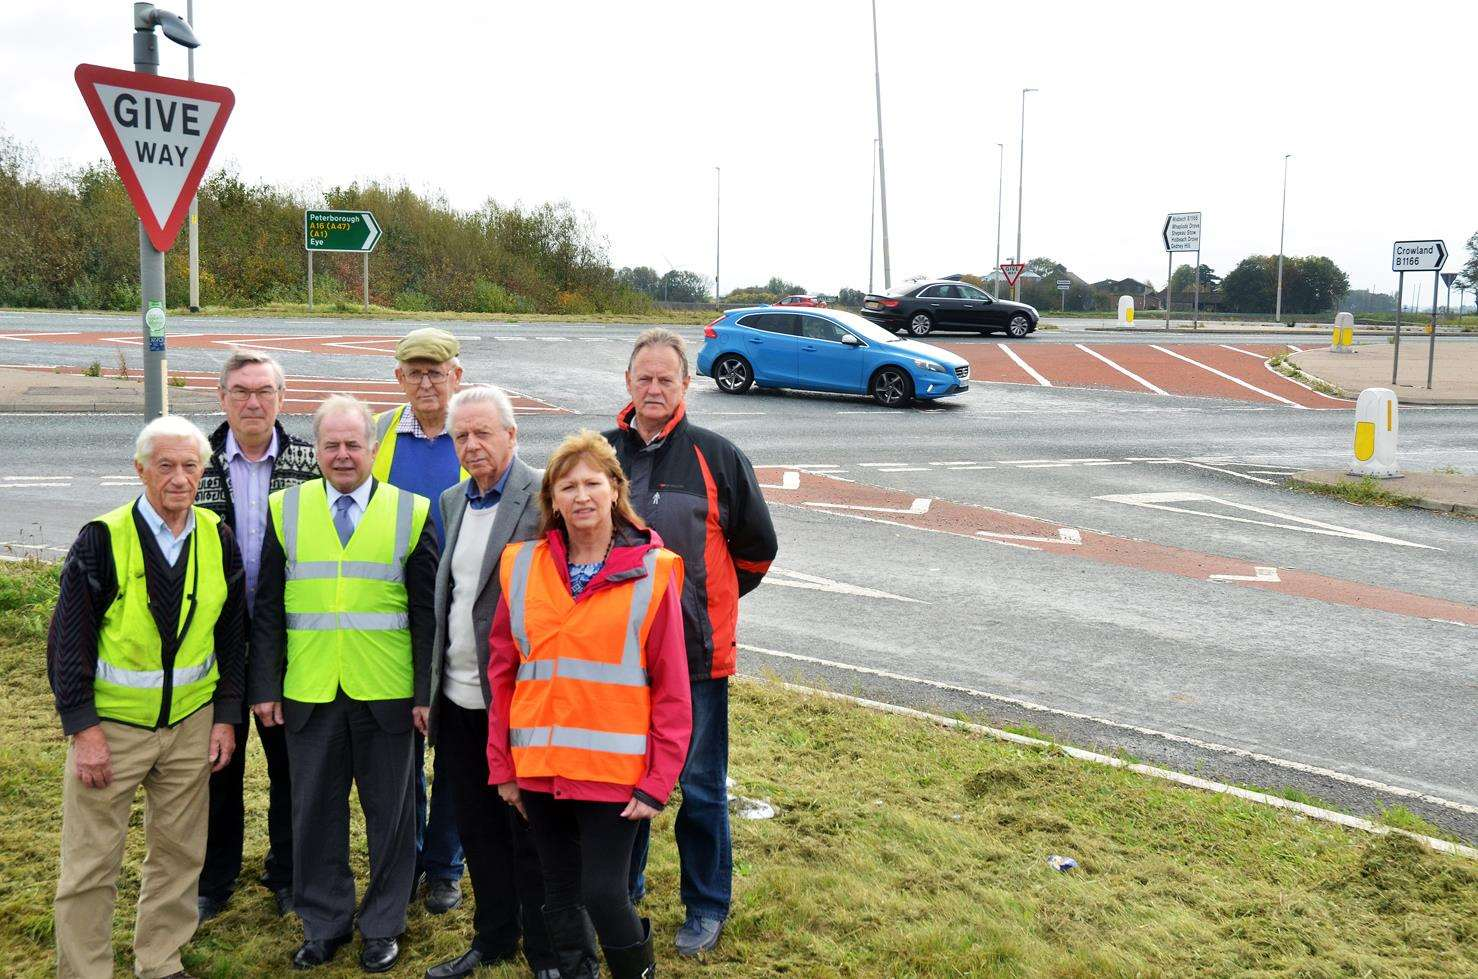 Crowland parish and district councillor Bryan Alcock and county councillor Nigel Pepper (front left and second left) at the A16/B1166 junction in Crowland with parish councillor David Ringham, district councillor Angela Harrison, (back) parish councillors Philip Green and Michael Atkinson, along with David Barfoot.Photo by Tim Wilson.SG-171018-003TW